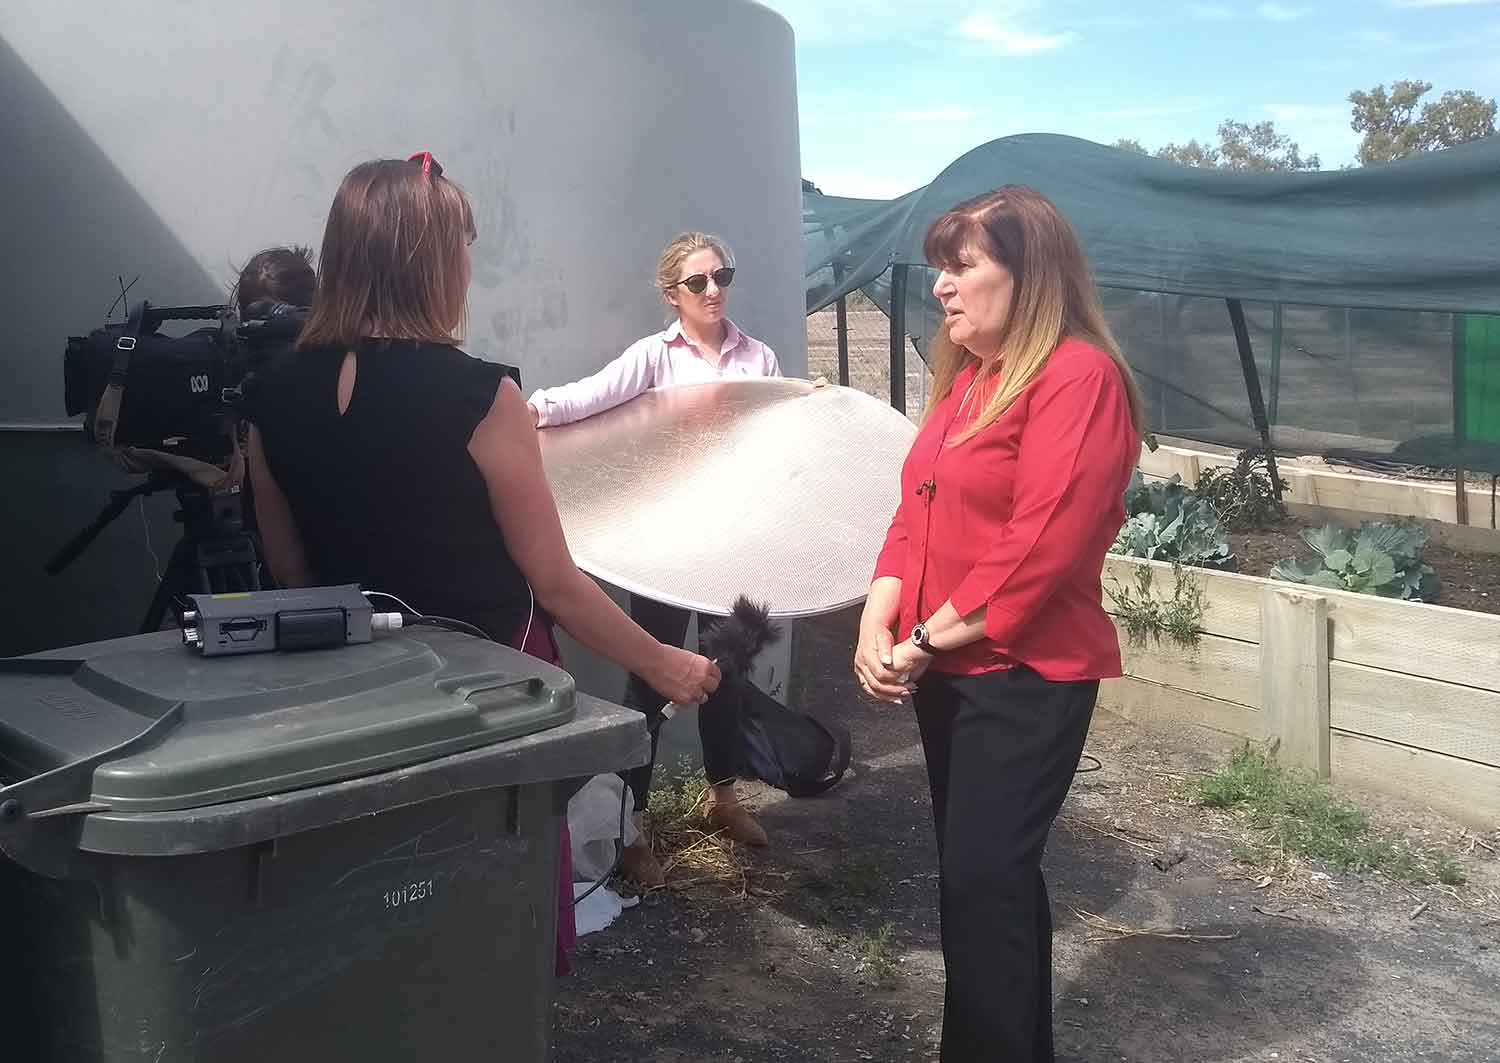 Walgett Aboriginial Medical Service CEO Christine Corby OAM speaks to ABC's Rachel Carbonell about her concerns about the impacts of high salt levels on Walgett's chronic disease burden, and the community garden.